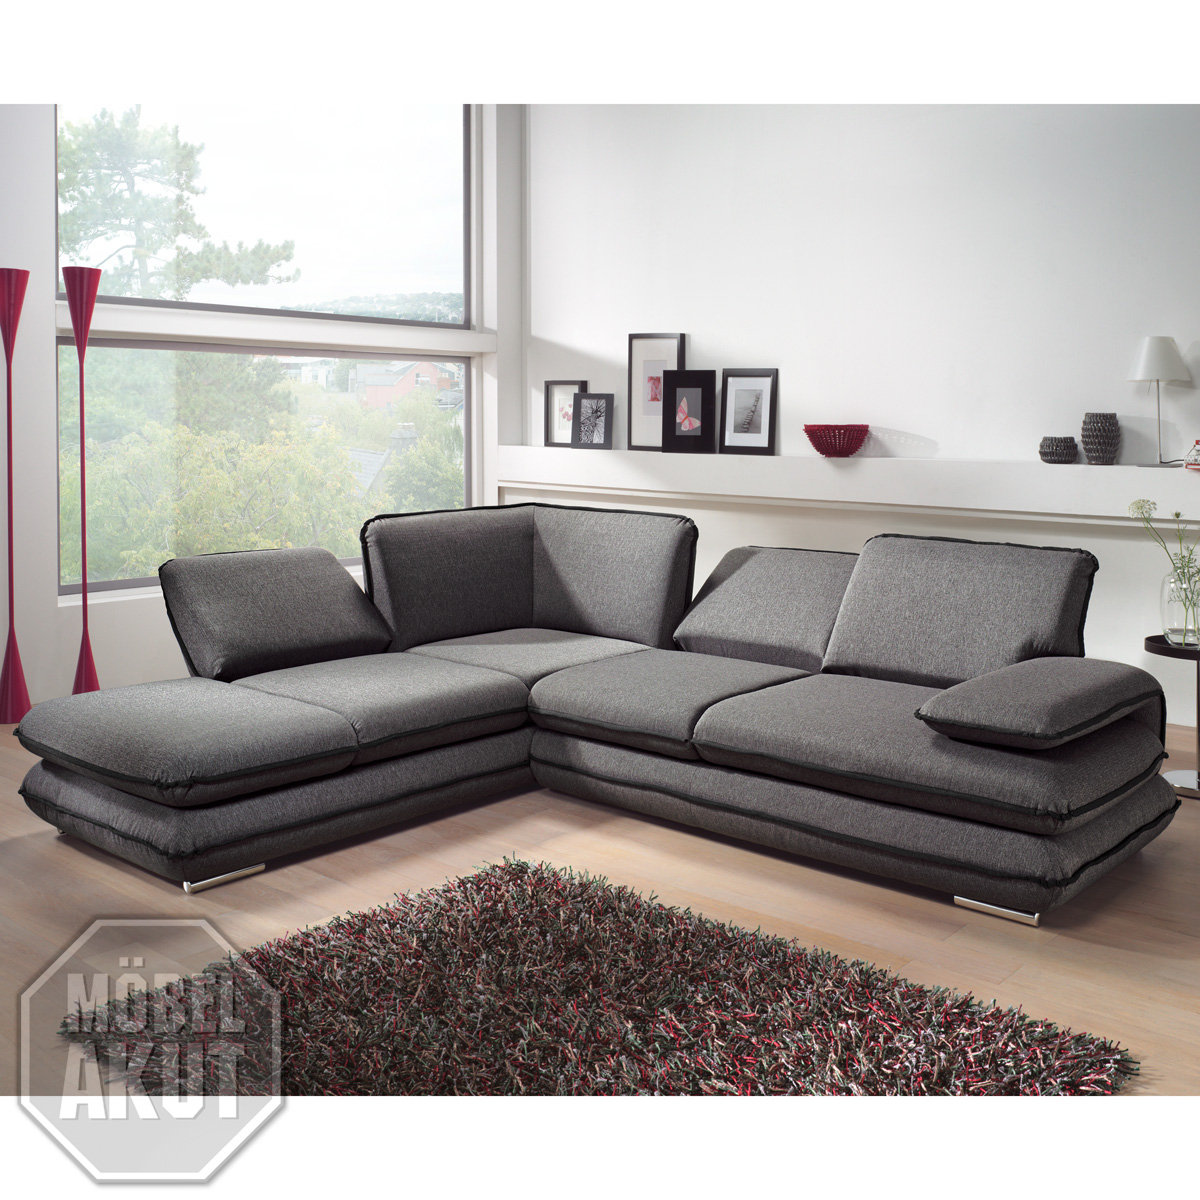 ecksofa turner sofa wohnlandschaft grau schwarz. Black Bedroom Furniture Sets. Home Design Ideas